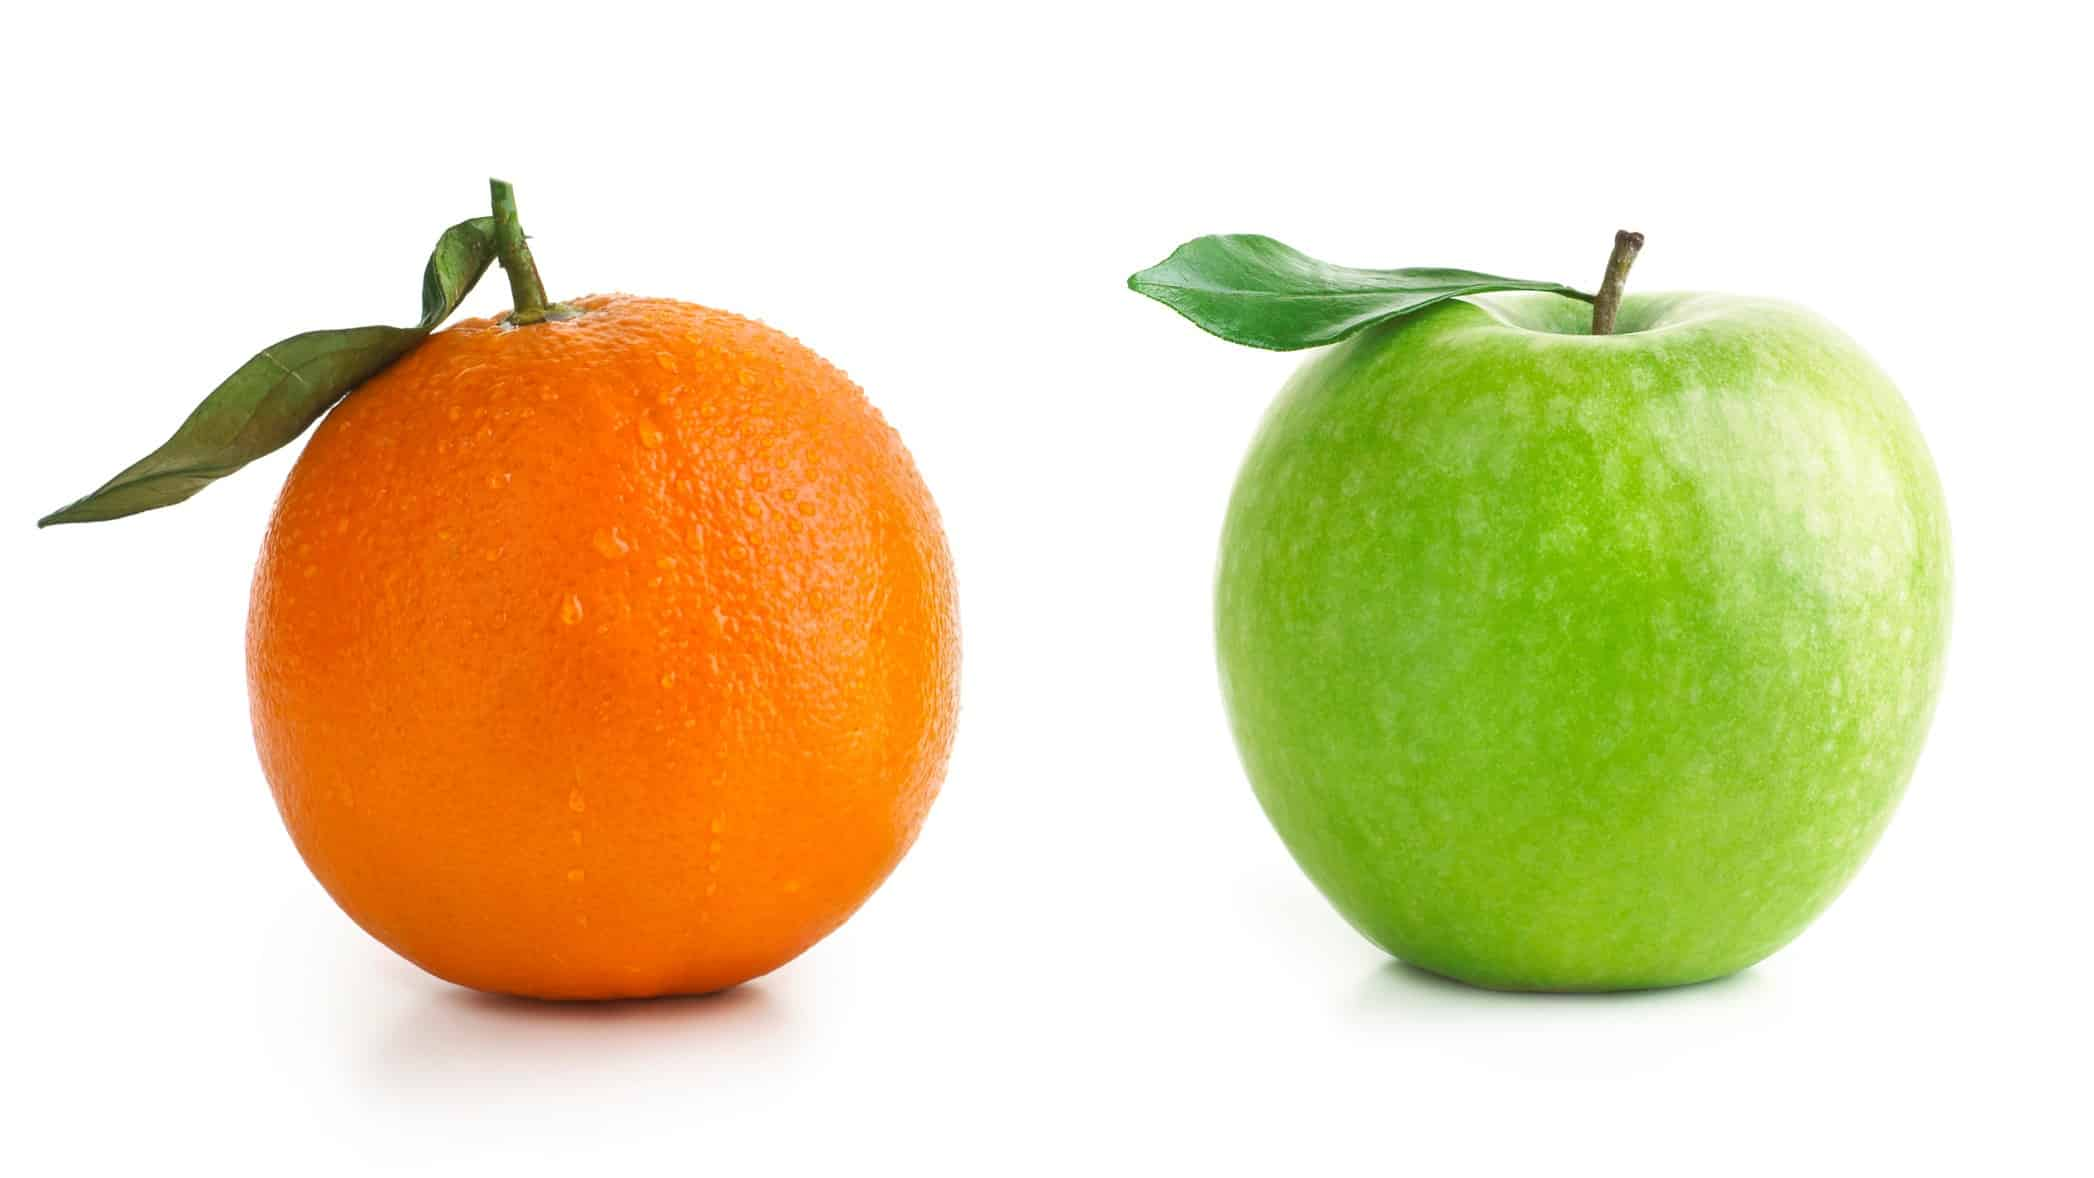 comparing asx shares and company tax represented by an apple and orange side by side